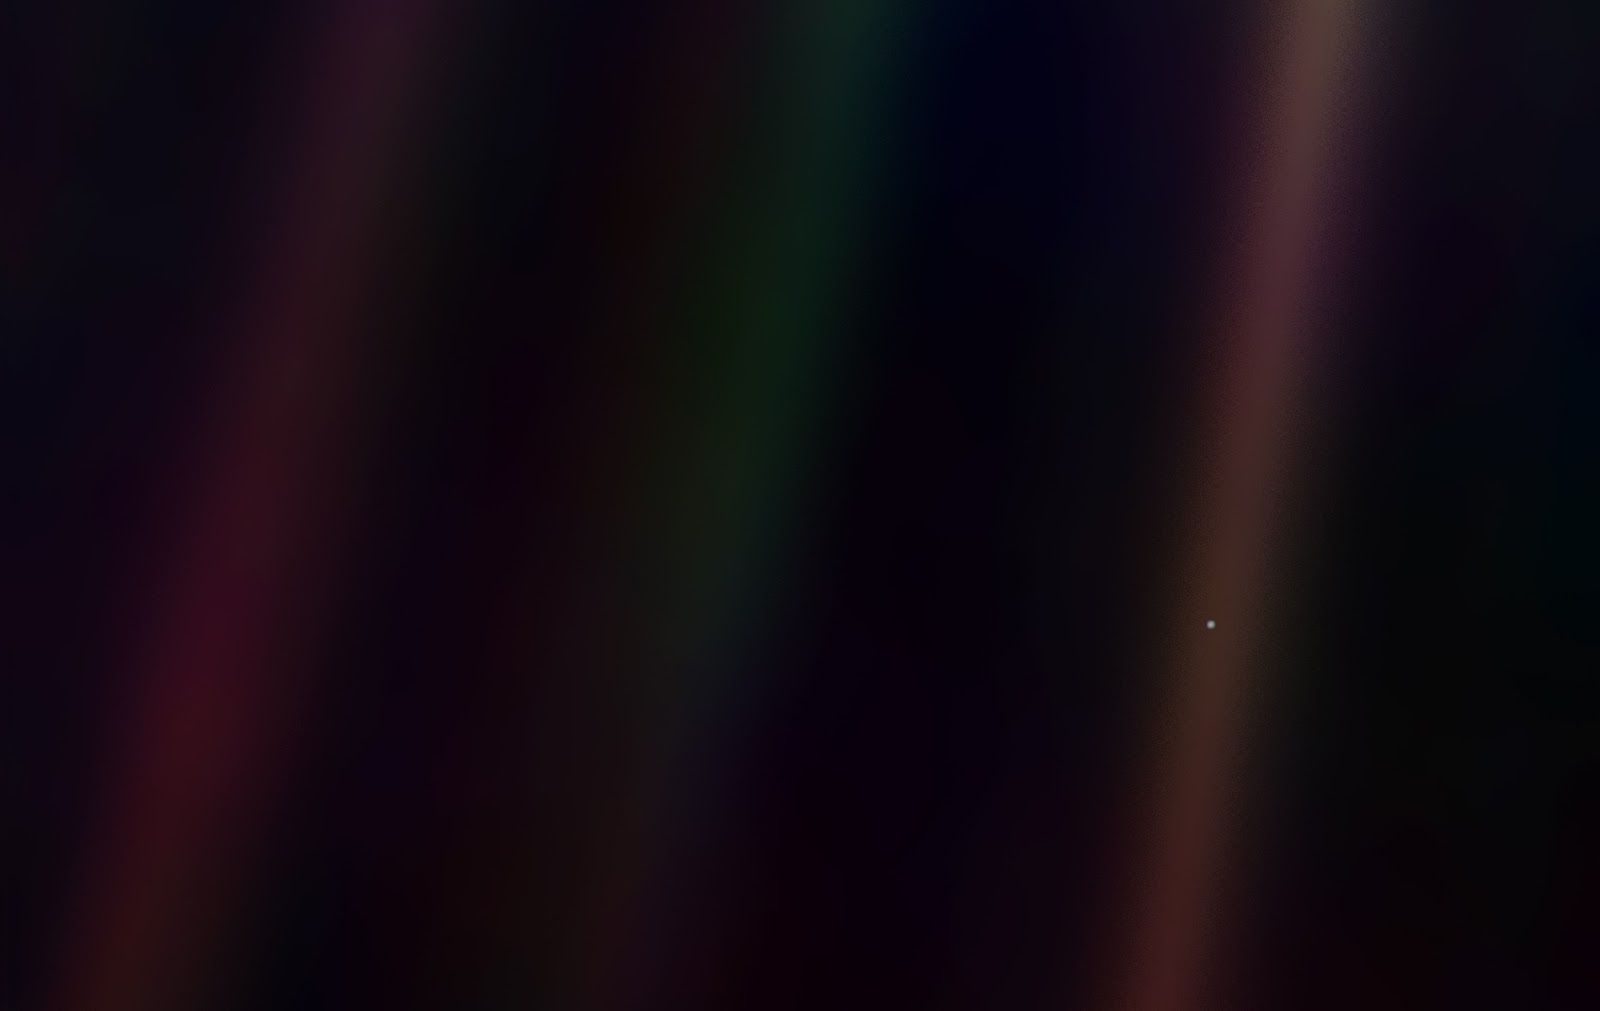 018 – The Pale Blue Dot